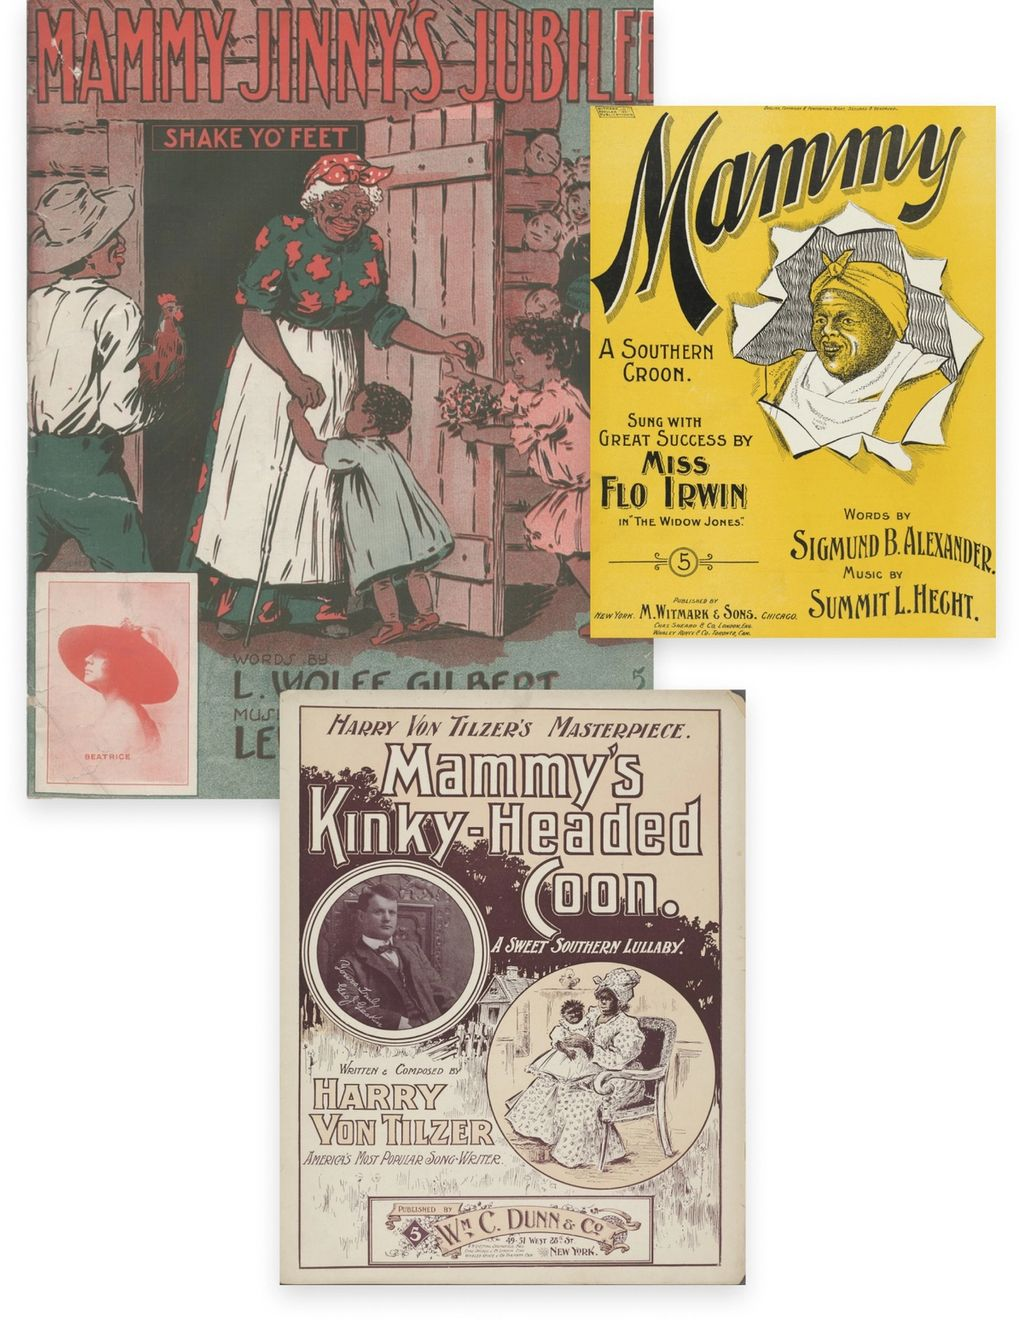 Historical imagery and artwork of Mammys